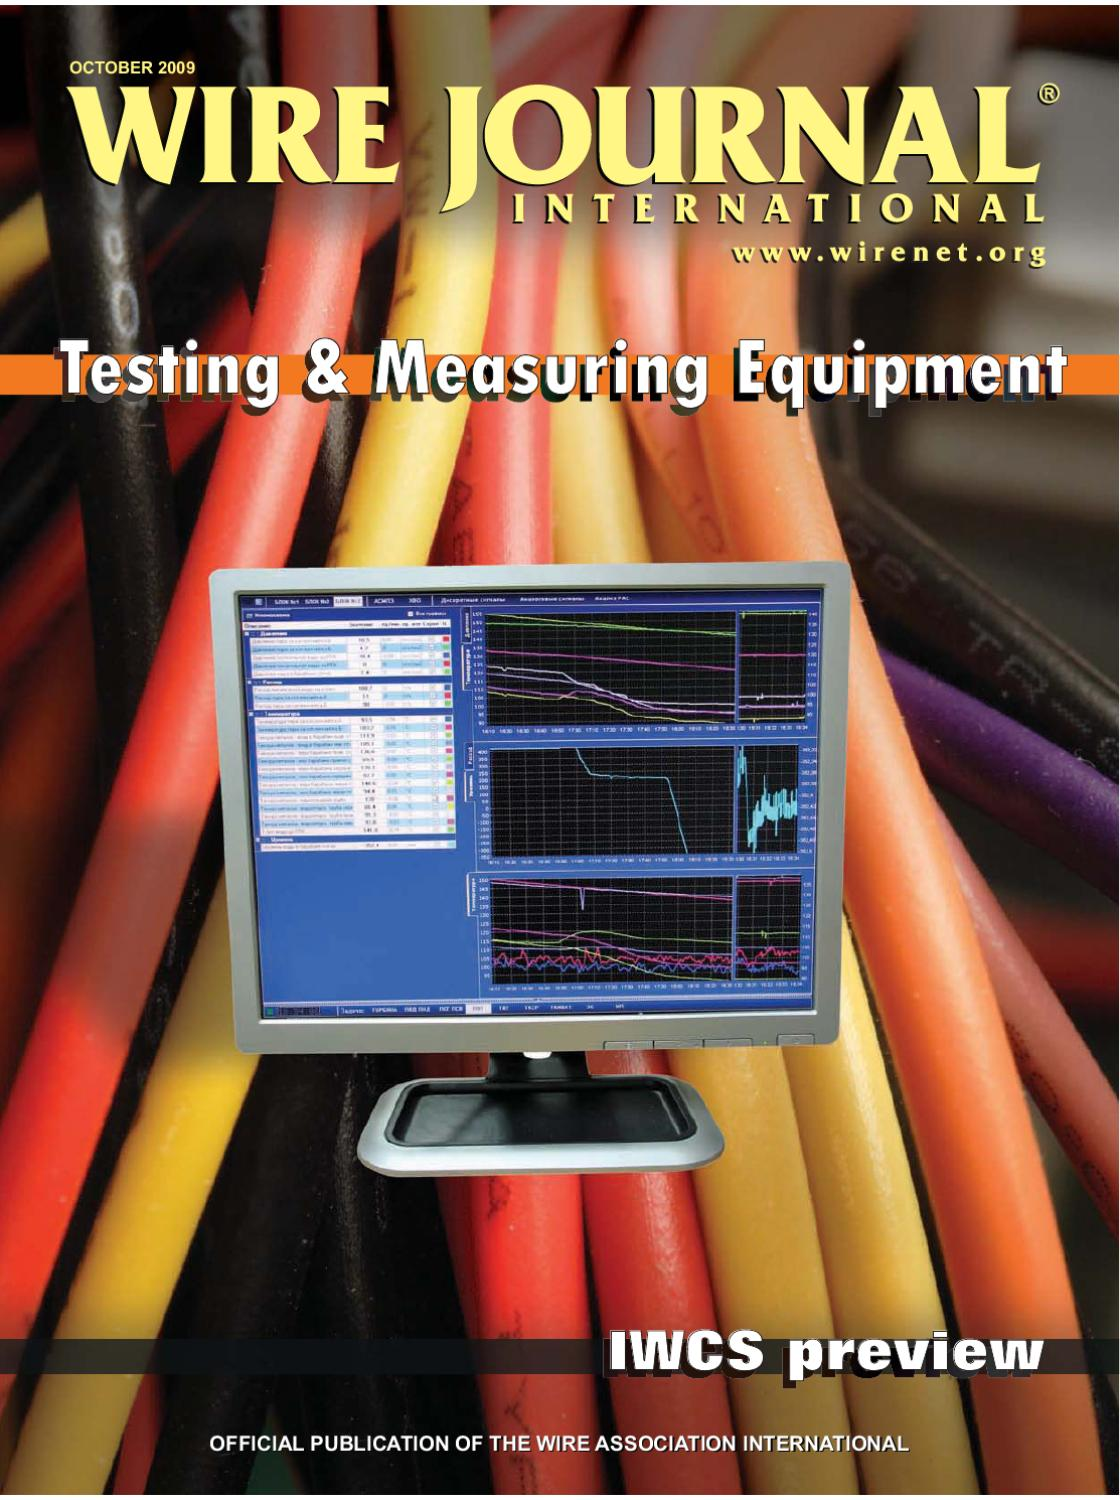 Testing & Measuring Equipment by Wire Journal International, Inc